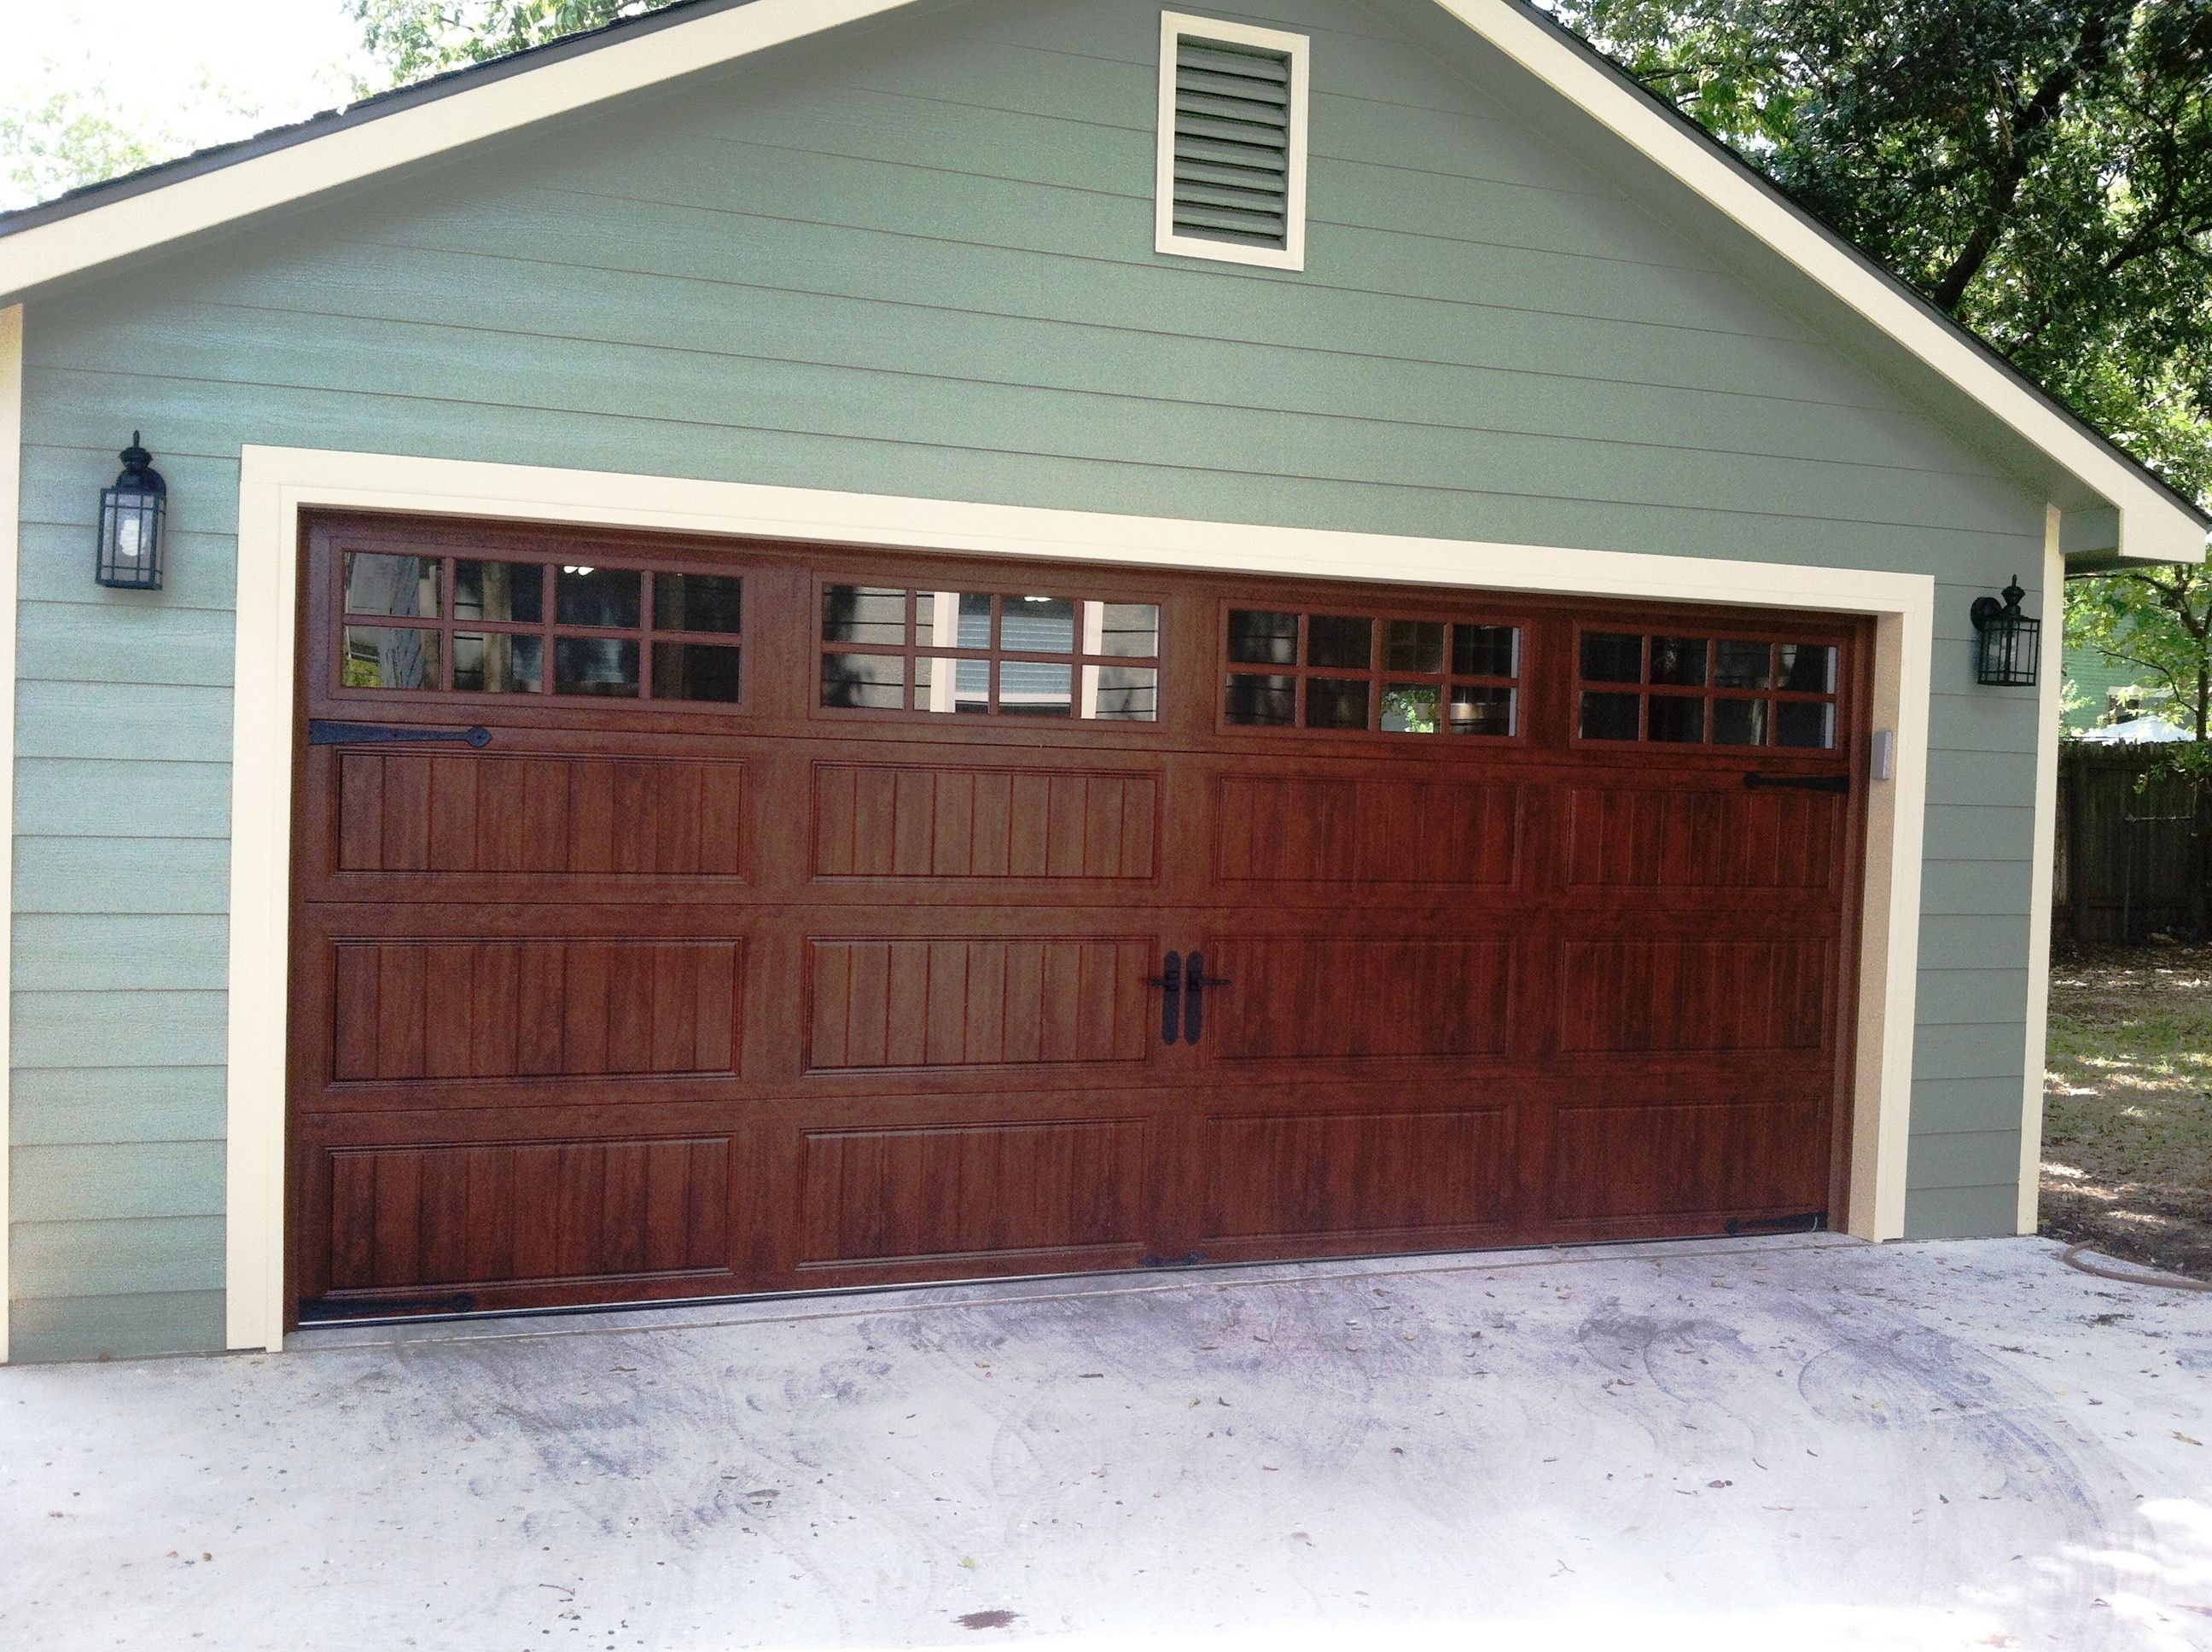 Gallery Collection Steel Garage Doors Garage Door Colors Garage Doors Faux Wood Garage Door